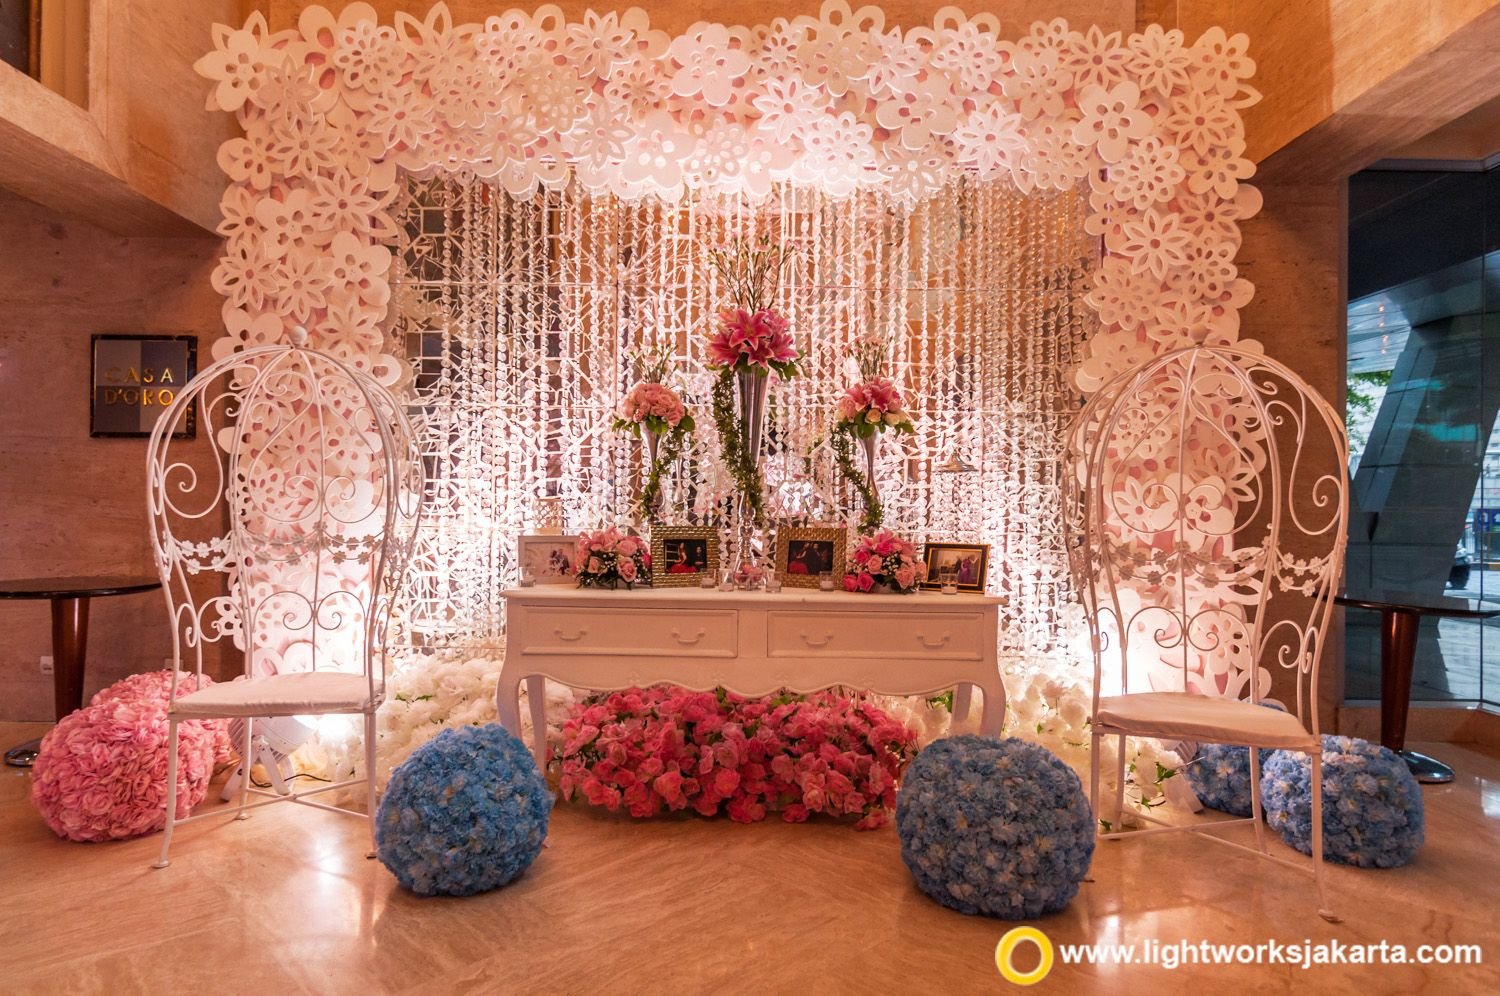 Simple yet gorgeous wedding foyer at the bali room kempinski simple yet gorgeous wedding foyer at the bali room kempinski hotel jakarta made junglespirit Choice Image